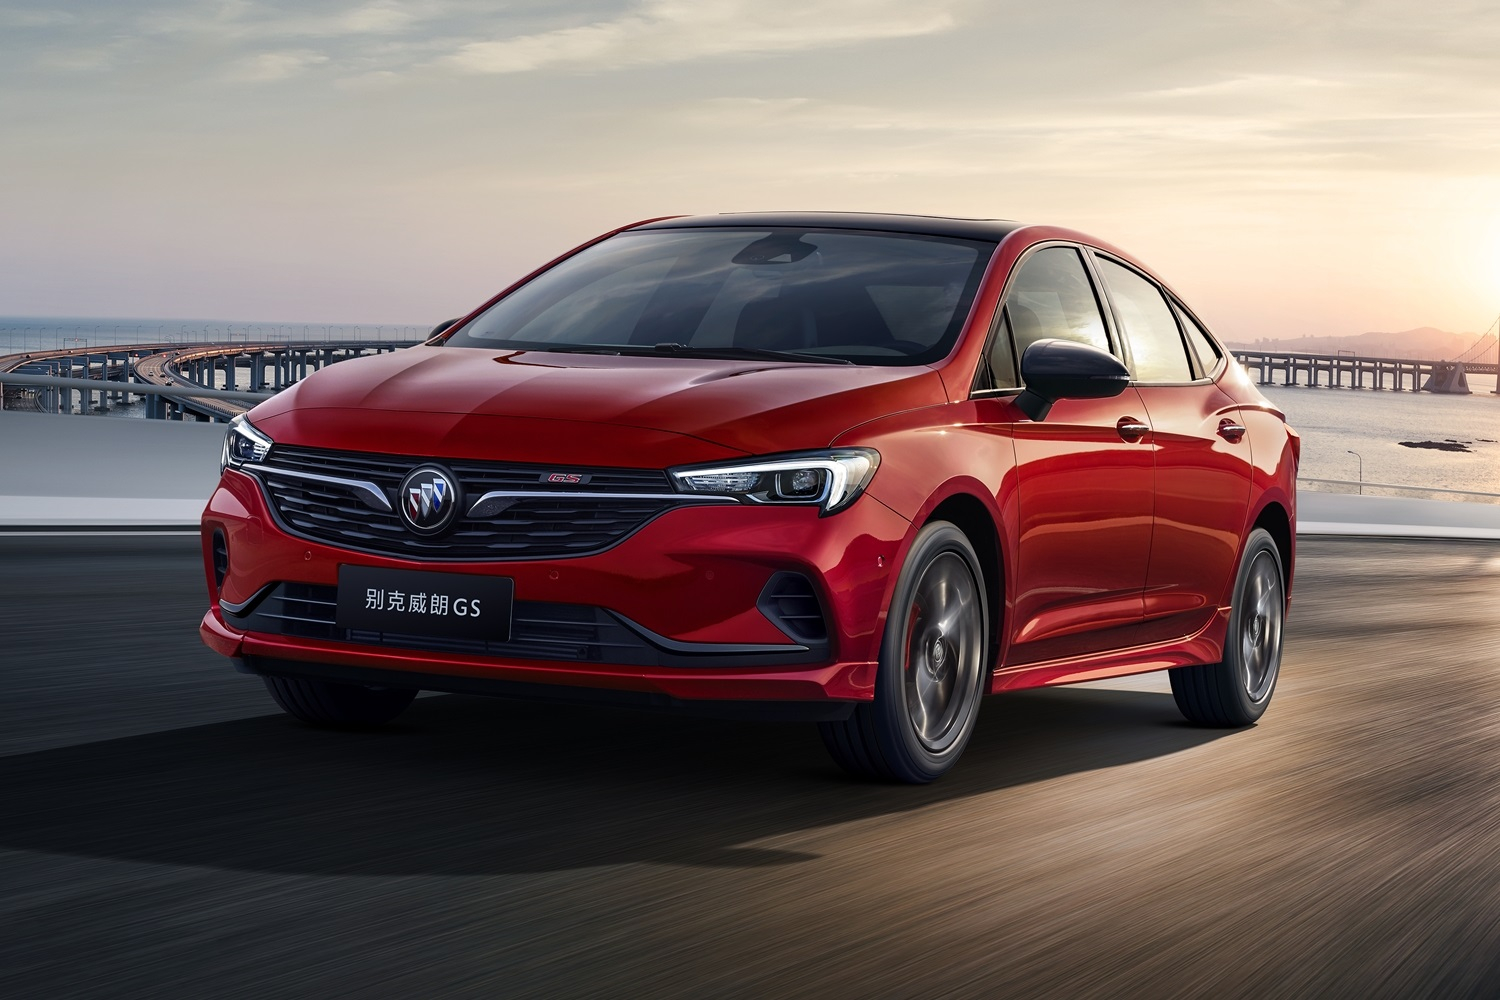 New 2021 Buick Verano Gs Launches In China | Gm Authority New 2021 Buick Cascada Lease, Trim Levels, Manual